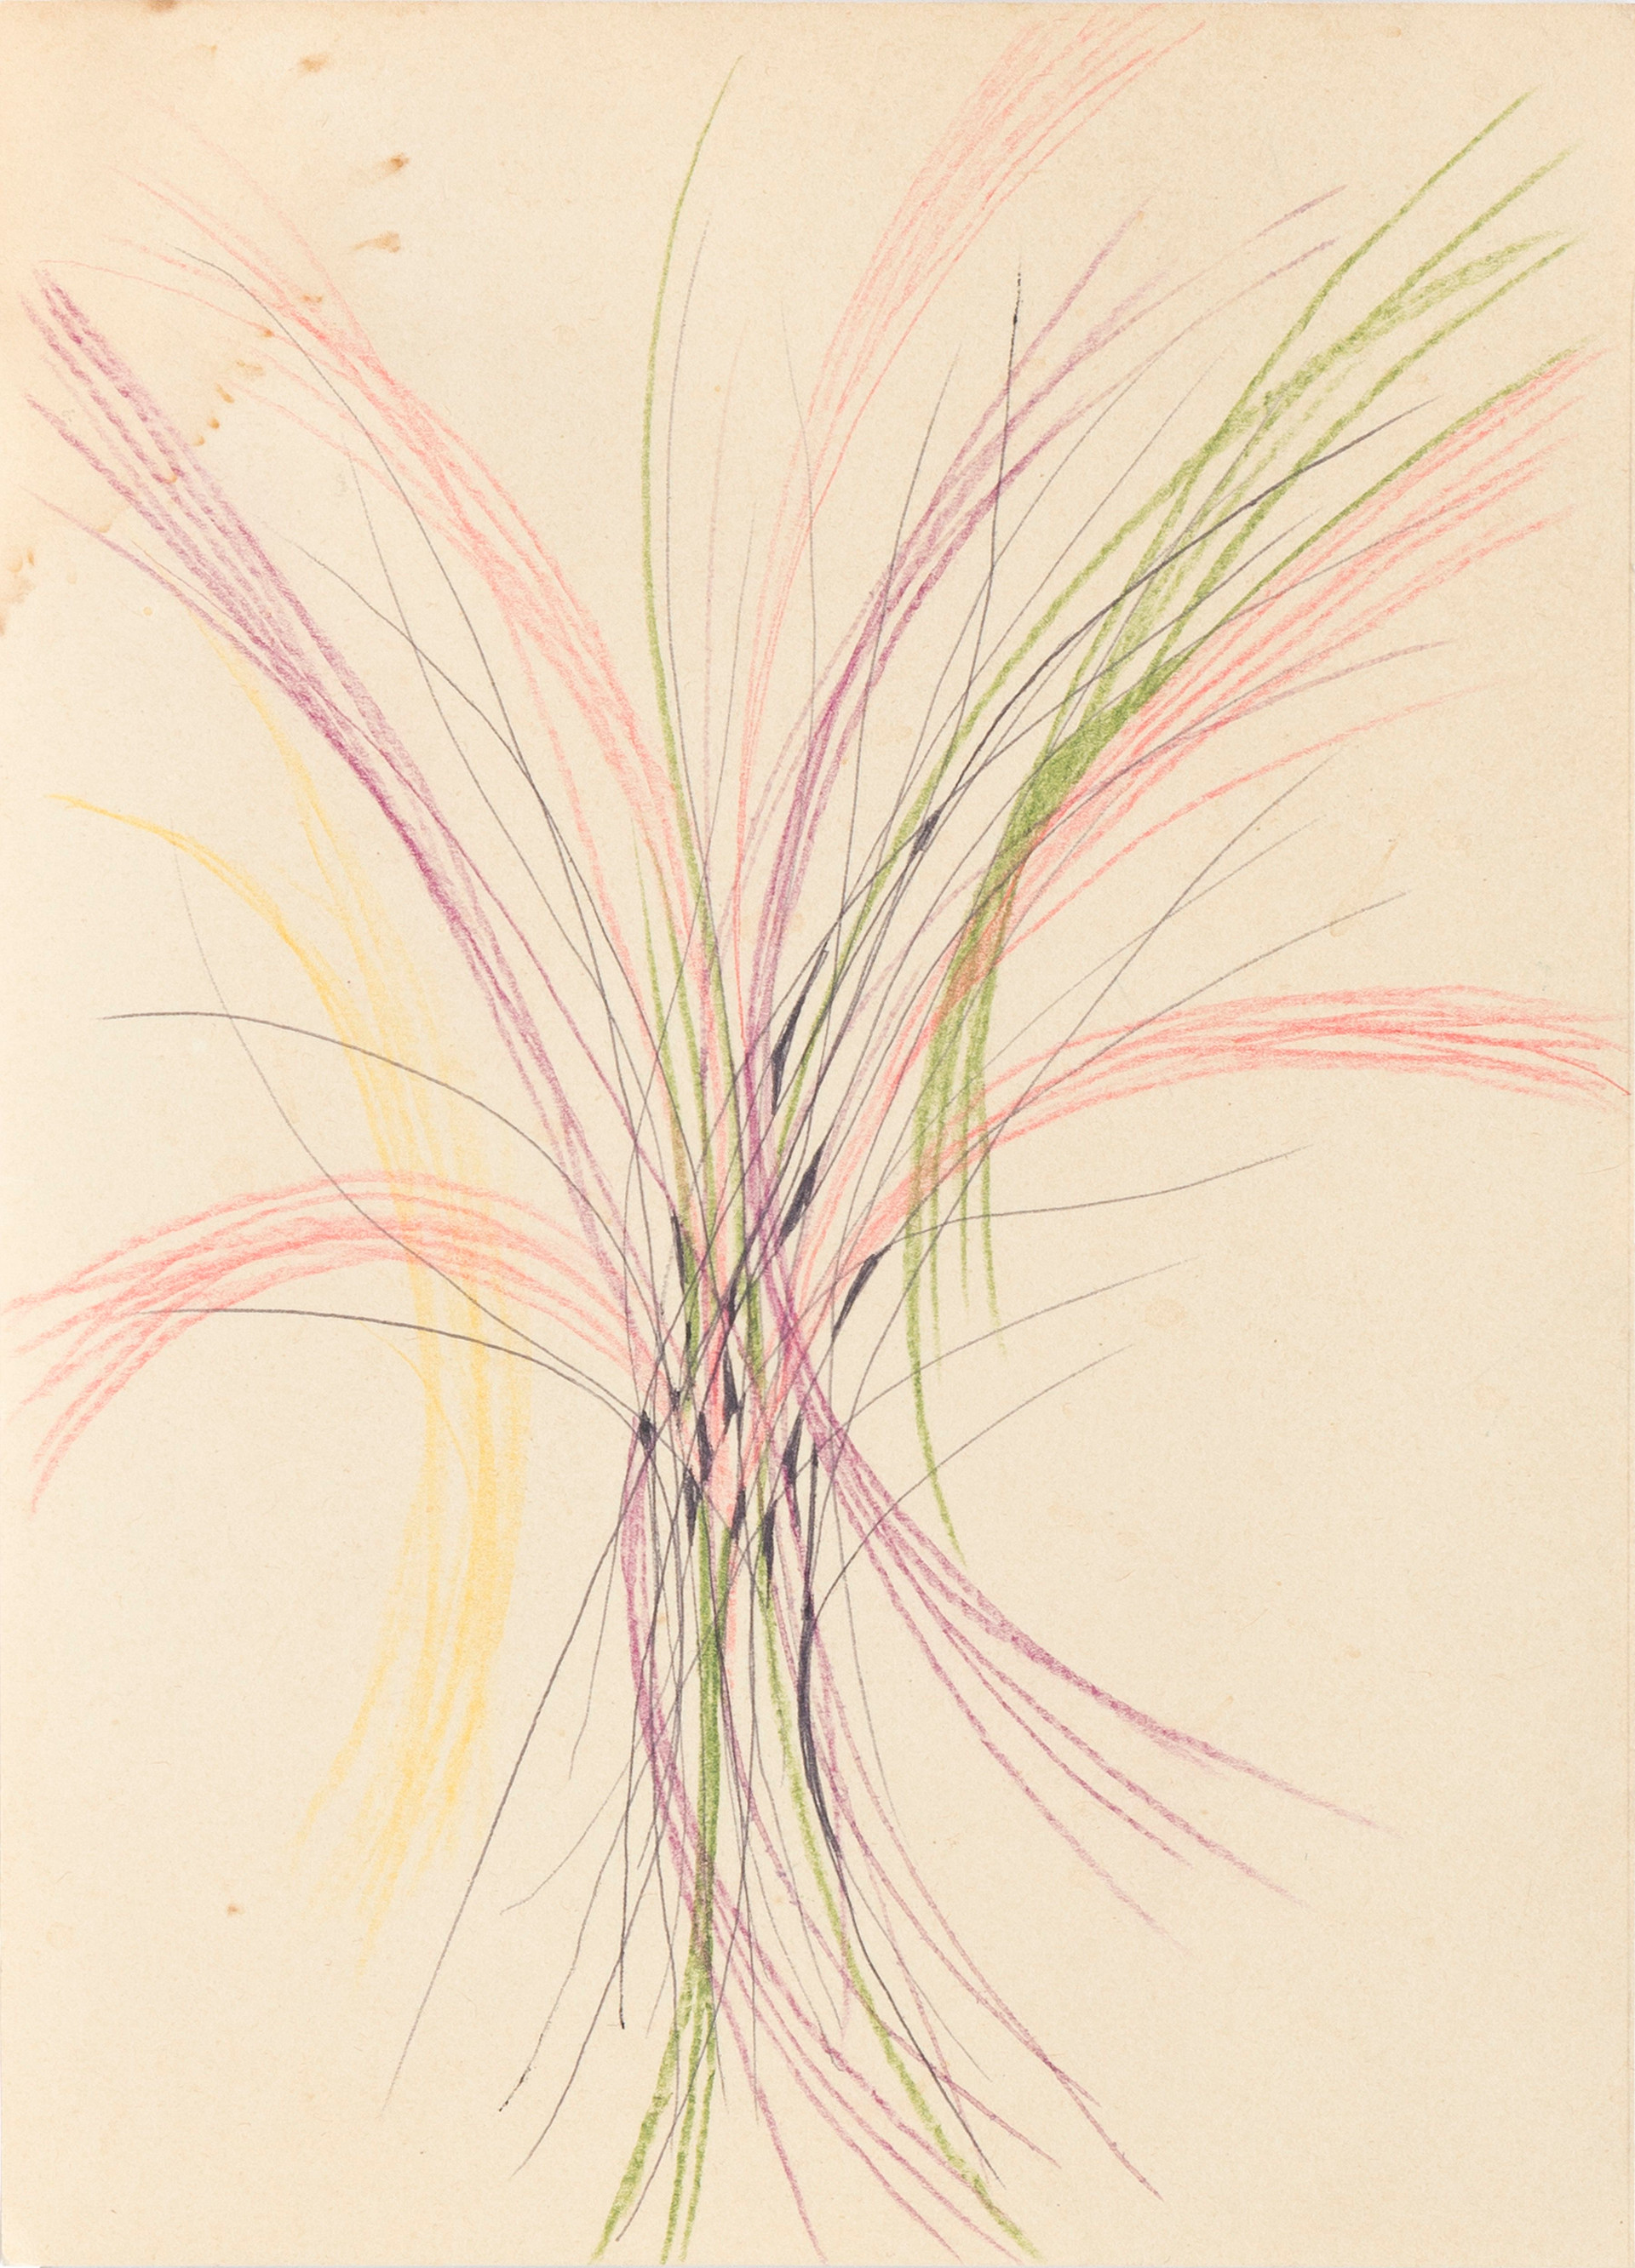 Untitled - small drawing with pink, green, purple, yellow and black curves